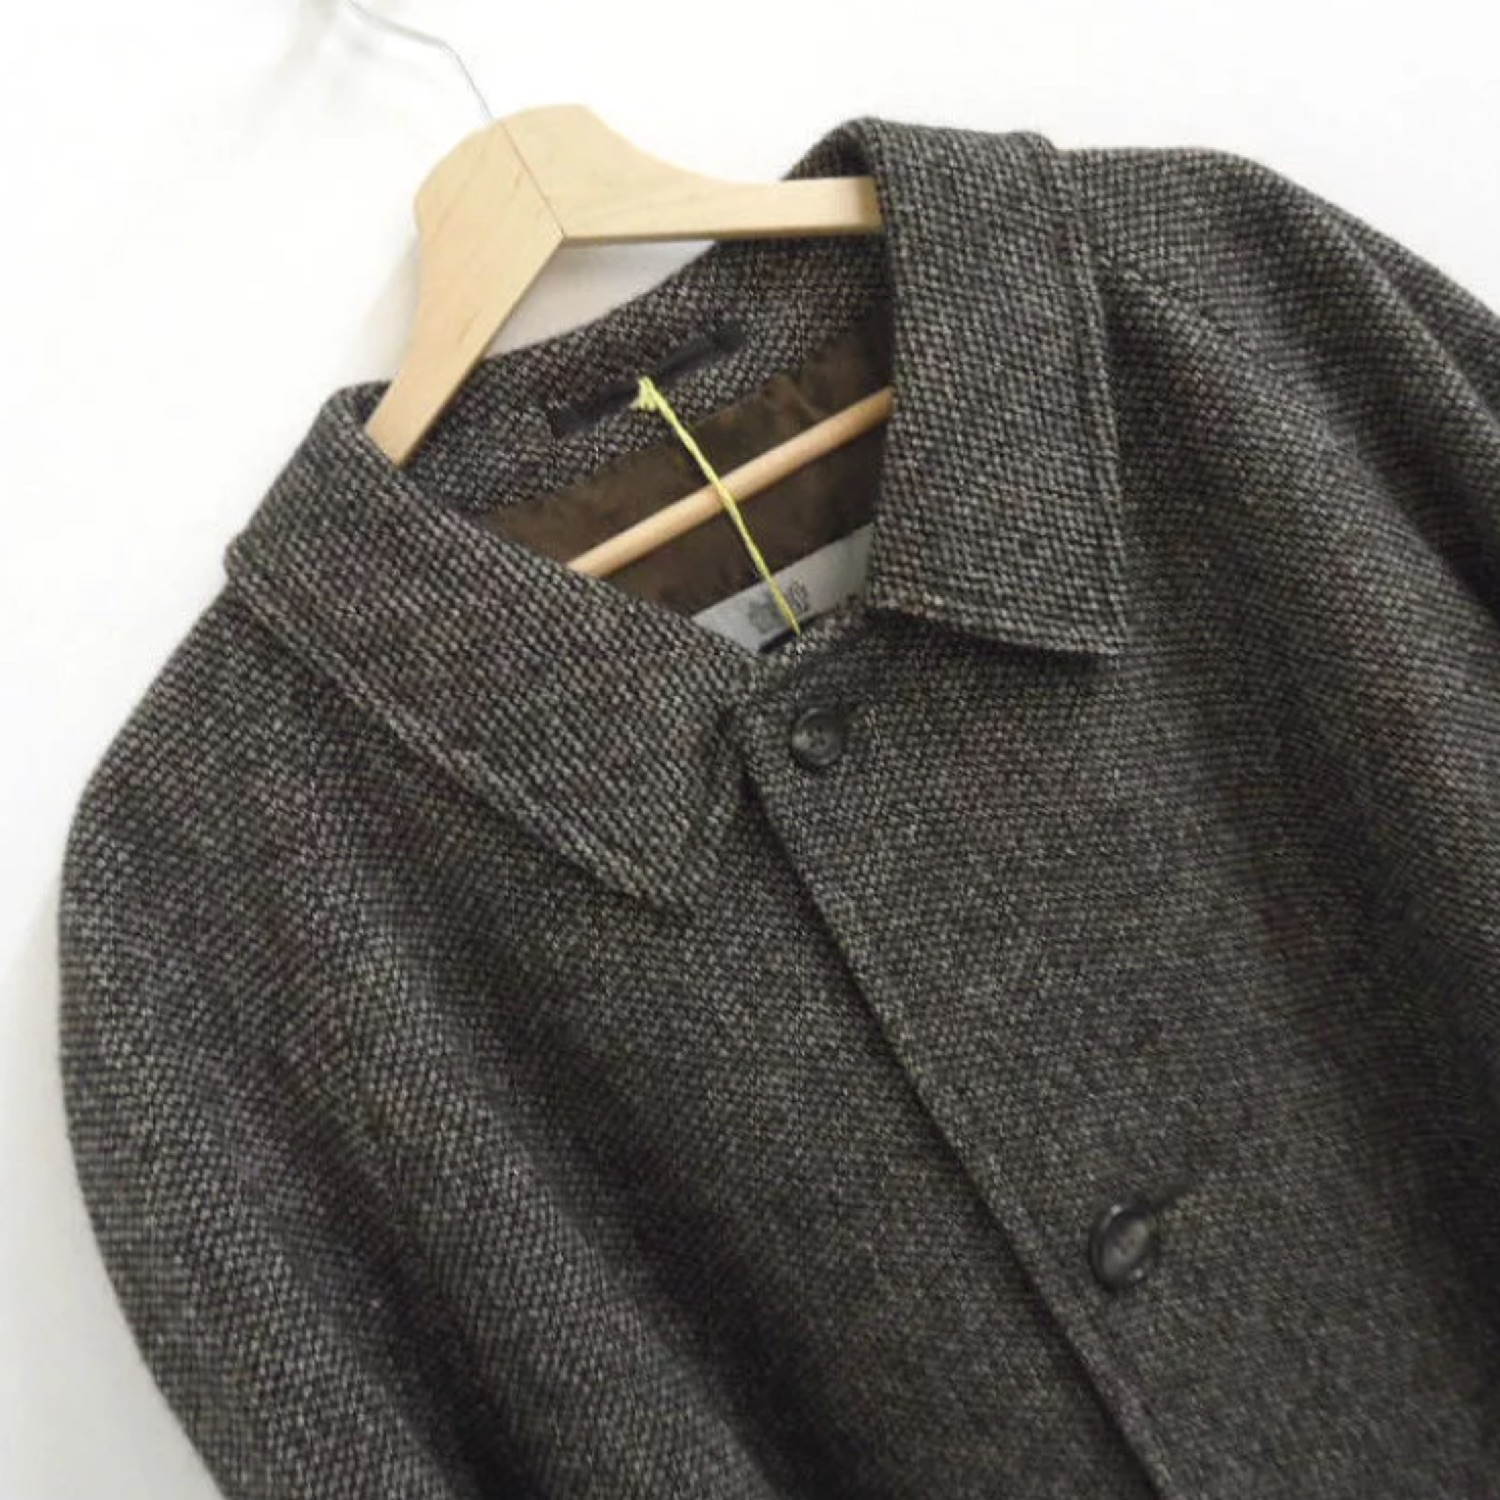 clearance sale well known preview of Men's Bnwt Aquascutum Lambswool Trench Coat: J642